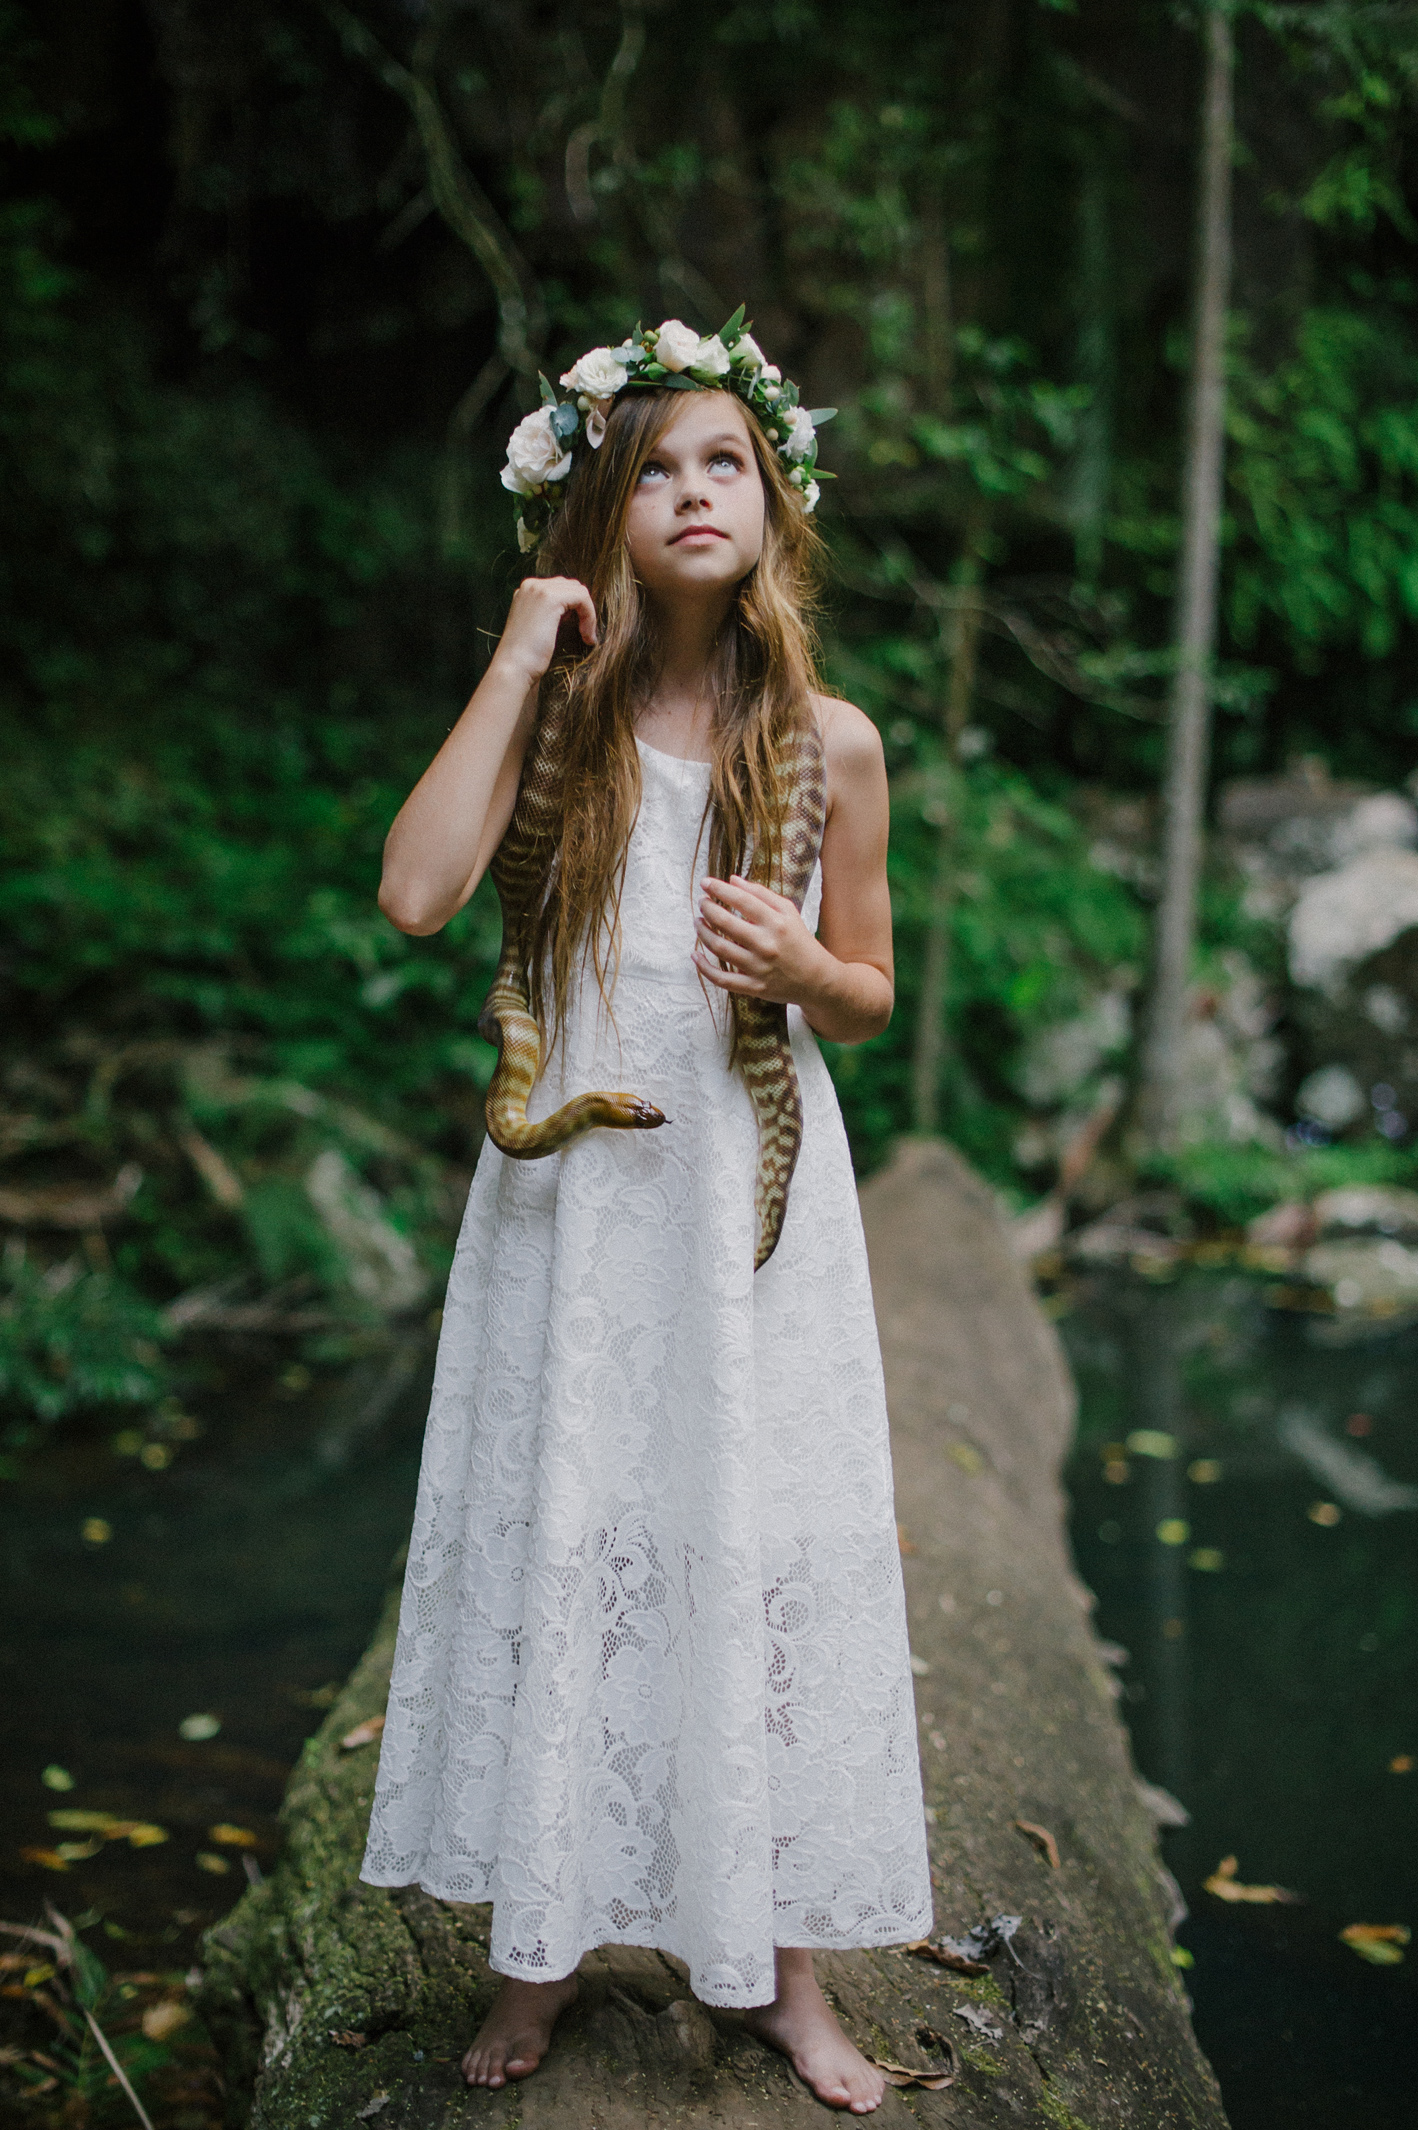 005-python-flowers_crown-of-eden_sophie-baker-photography